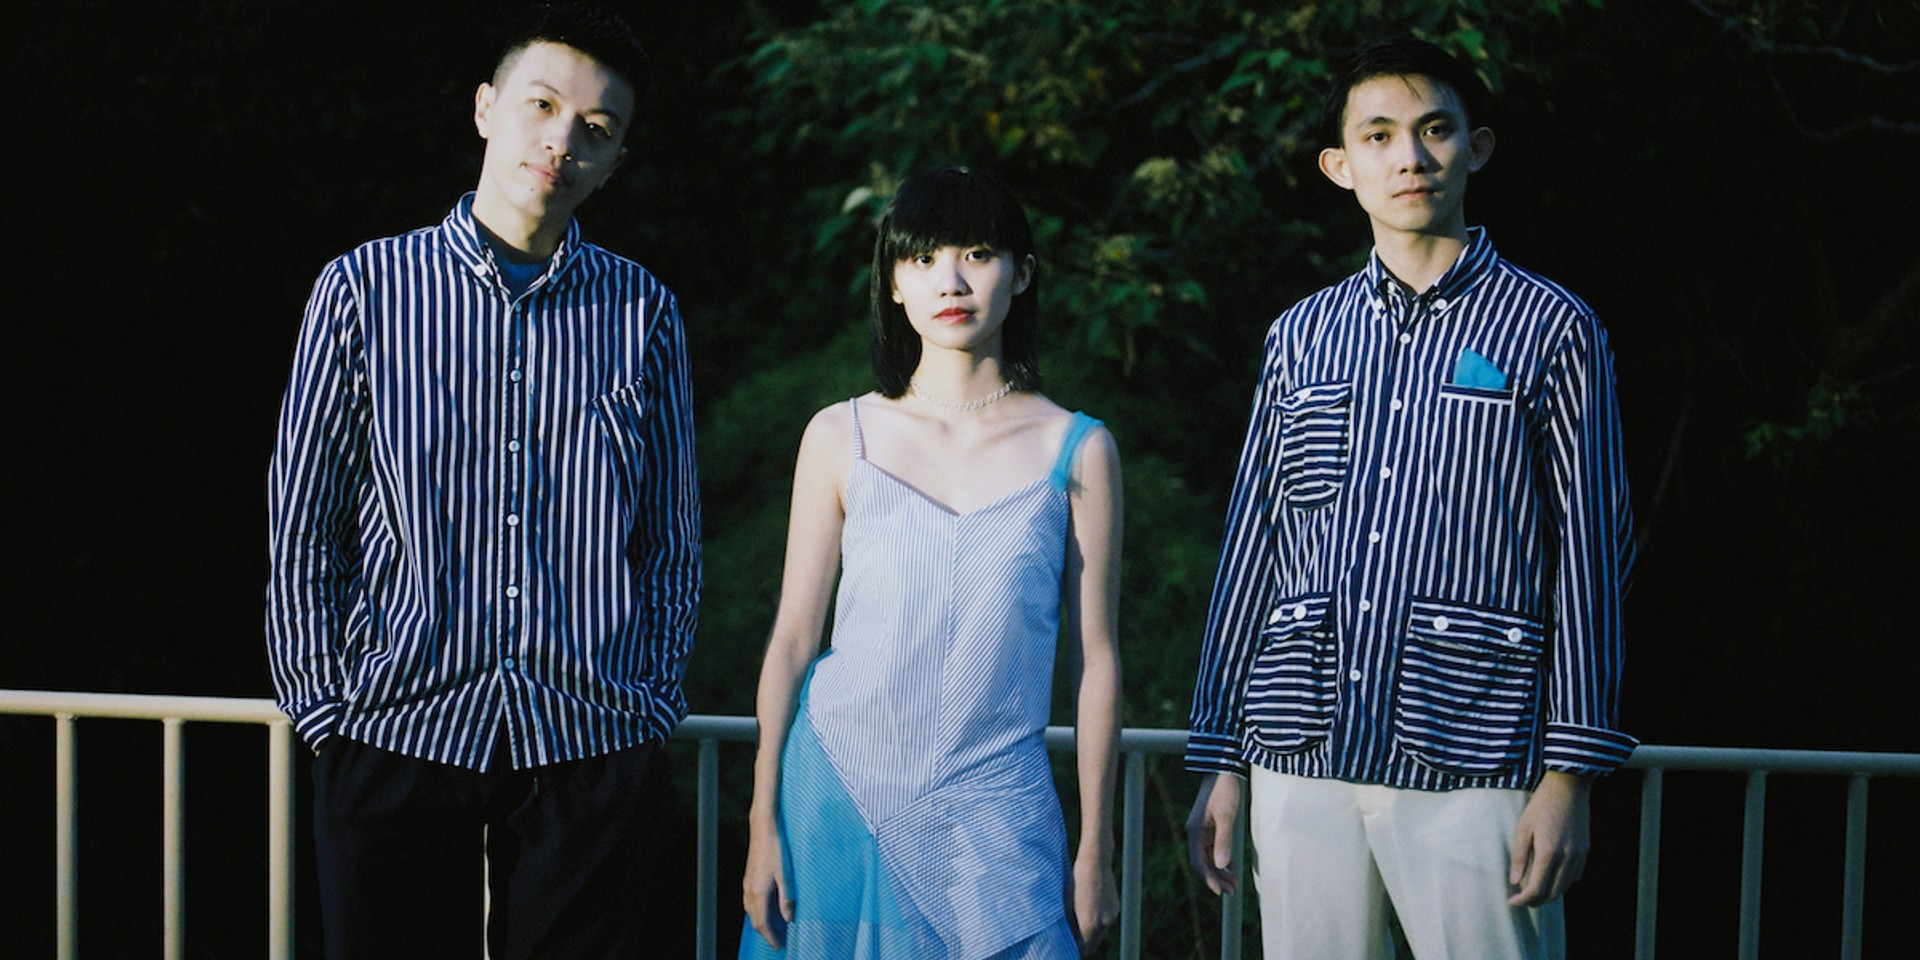 Elephant Gym release lyric videos for 'Quilt' with Kento Nagatsuka of WONK and 'Moonset' with YeYe – watch